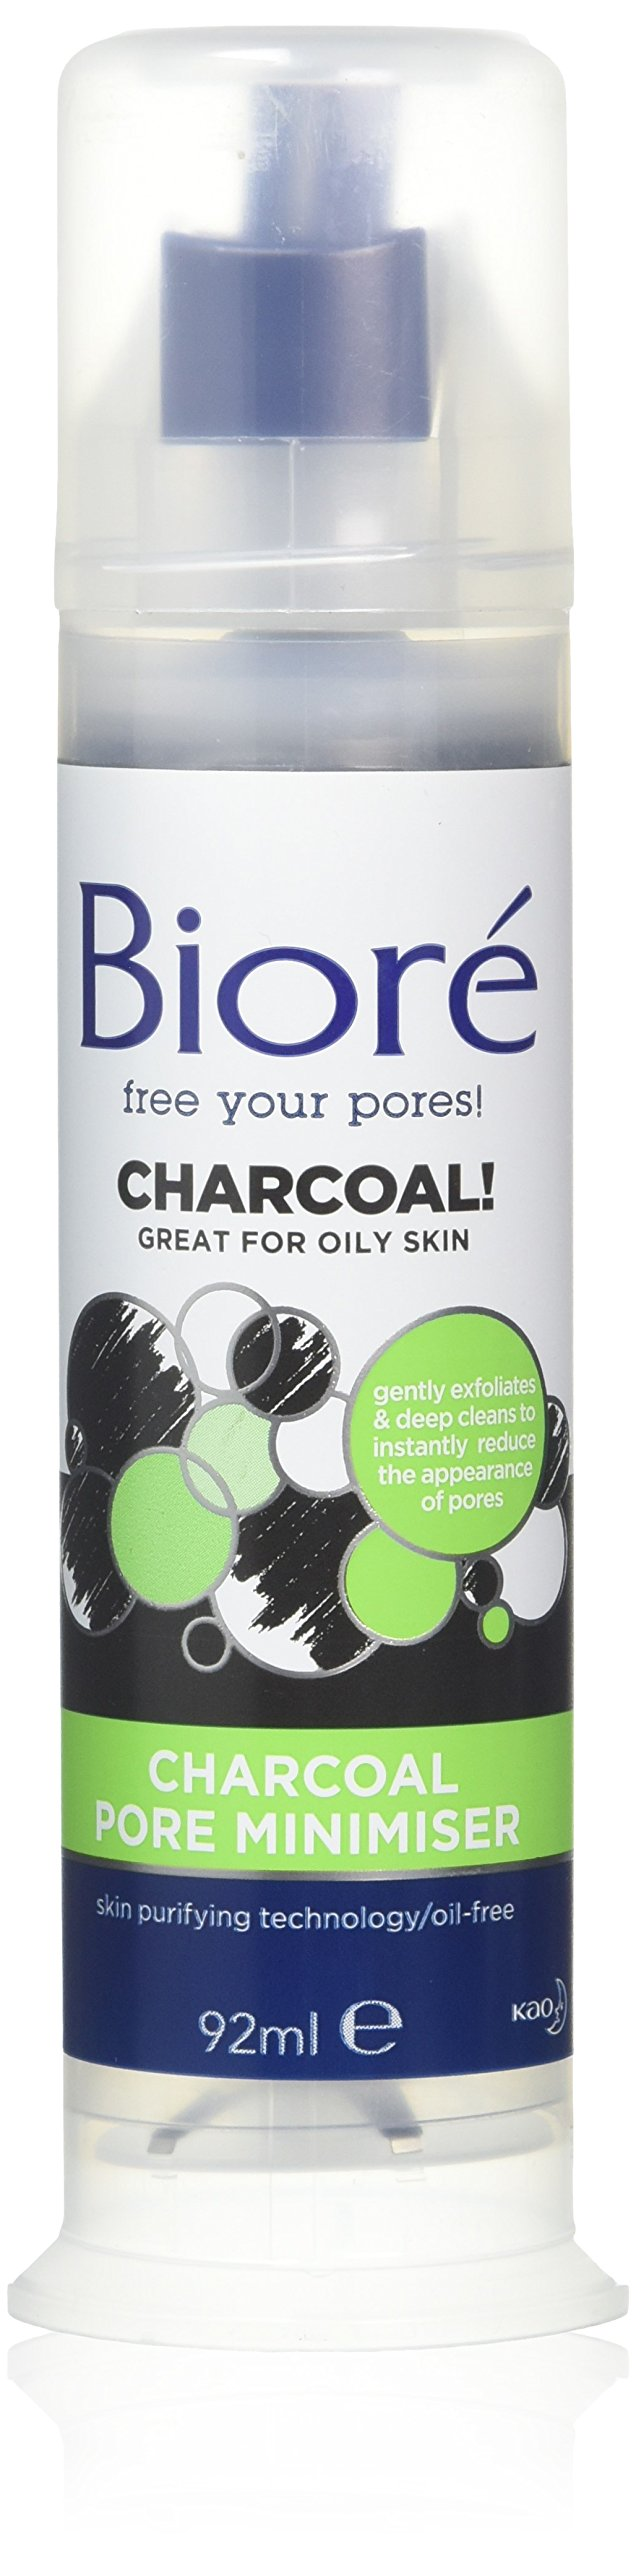 Biore Charcoal Pore Minimiser Face Scrub with Natural Charcoal for Oily Skin, 92 ml